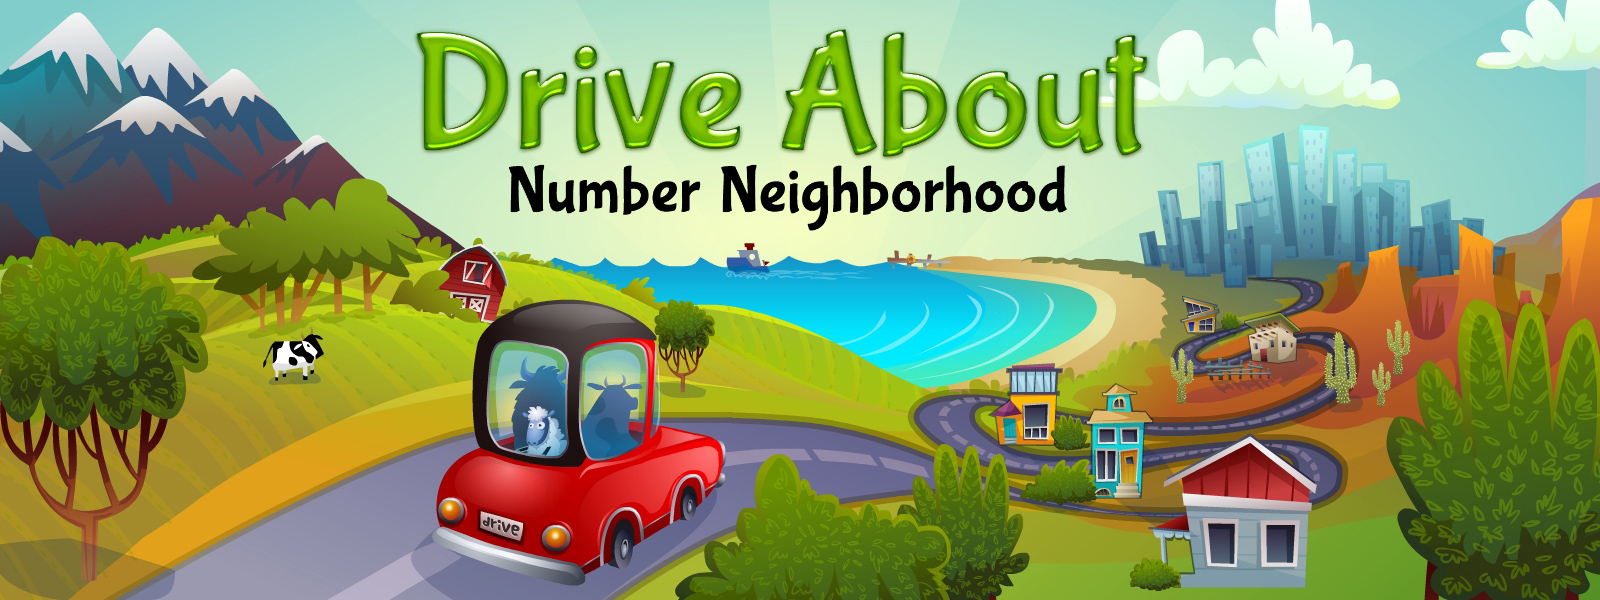 Drive About: Number Neighborhood